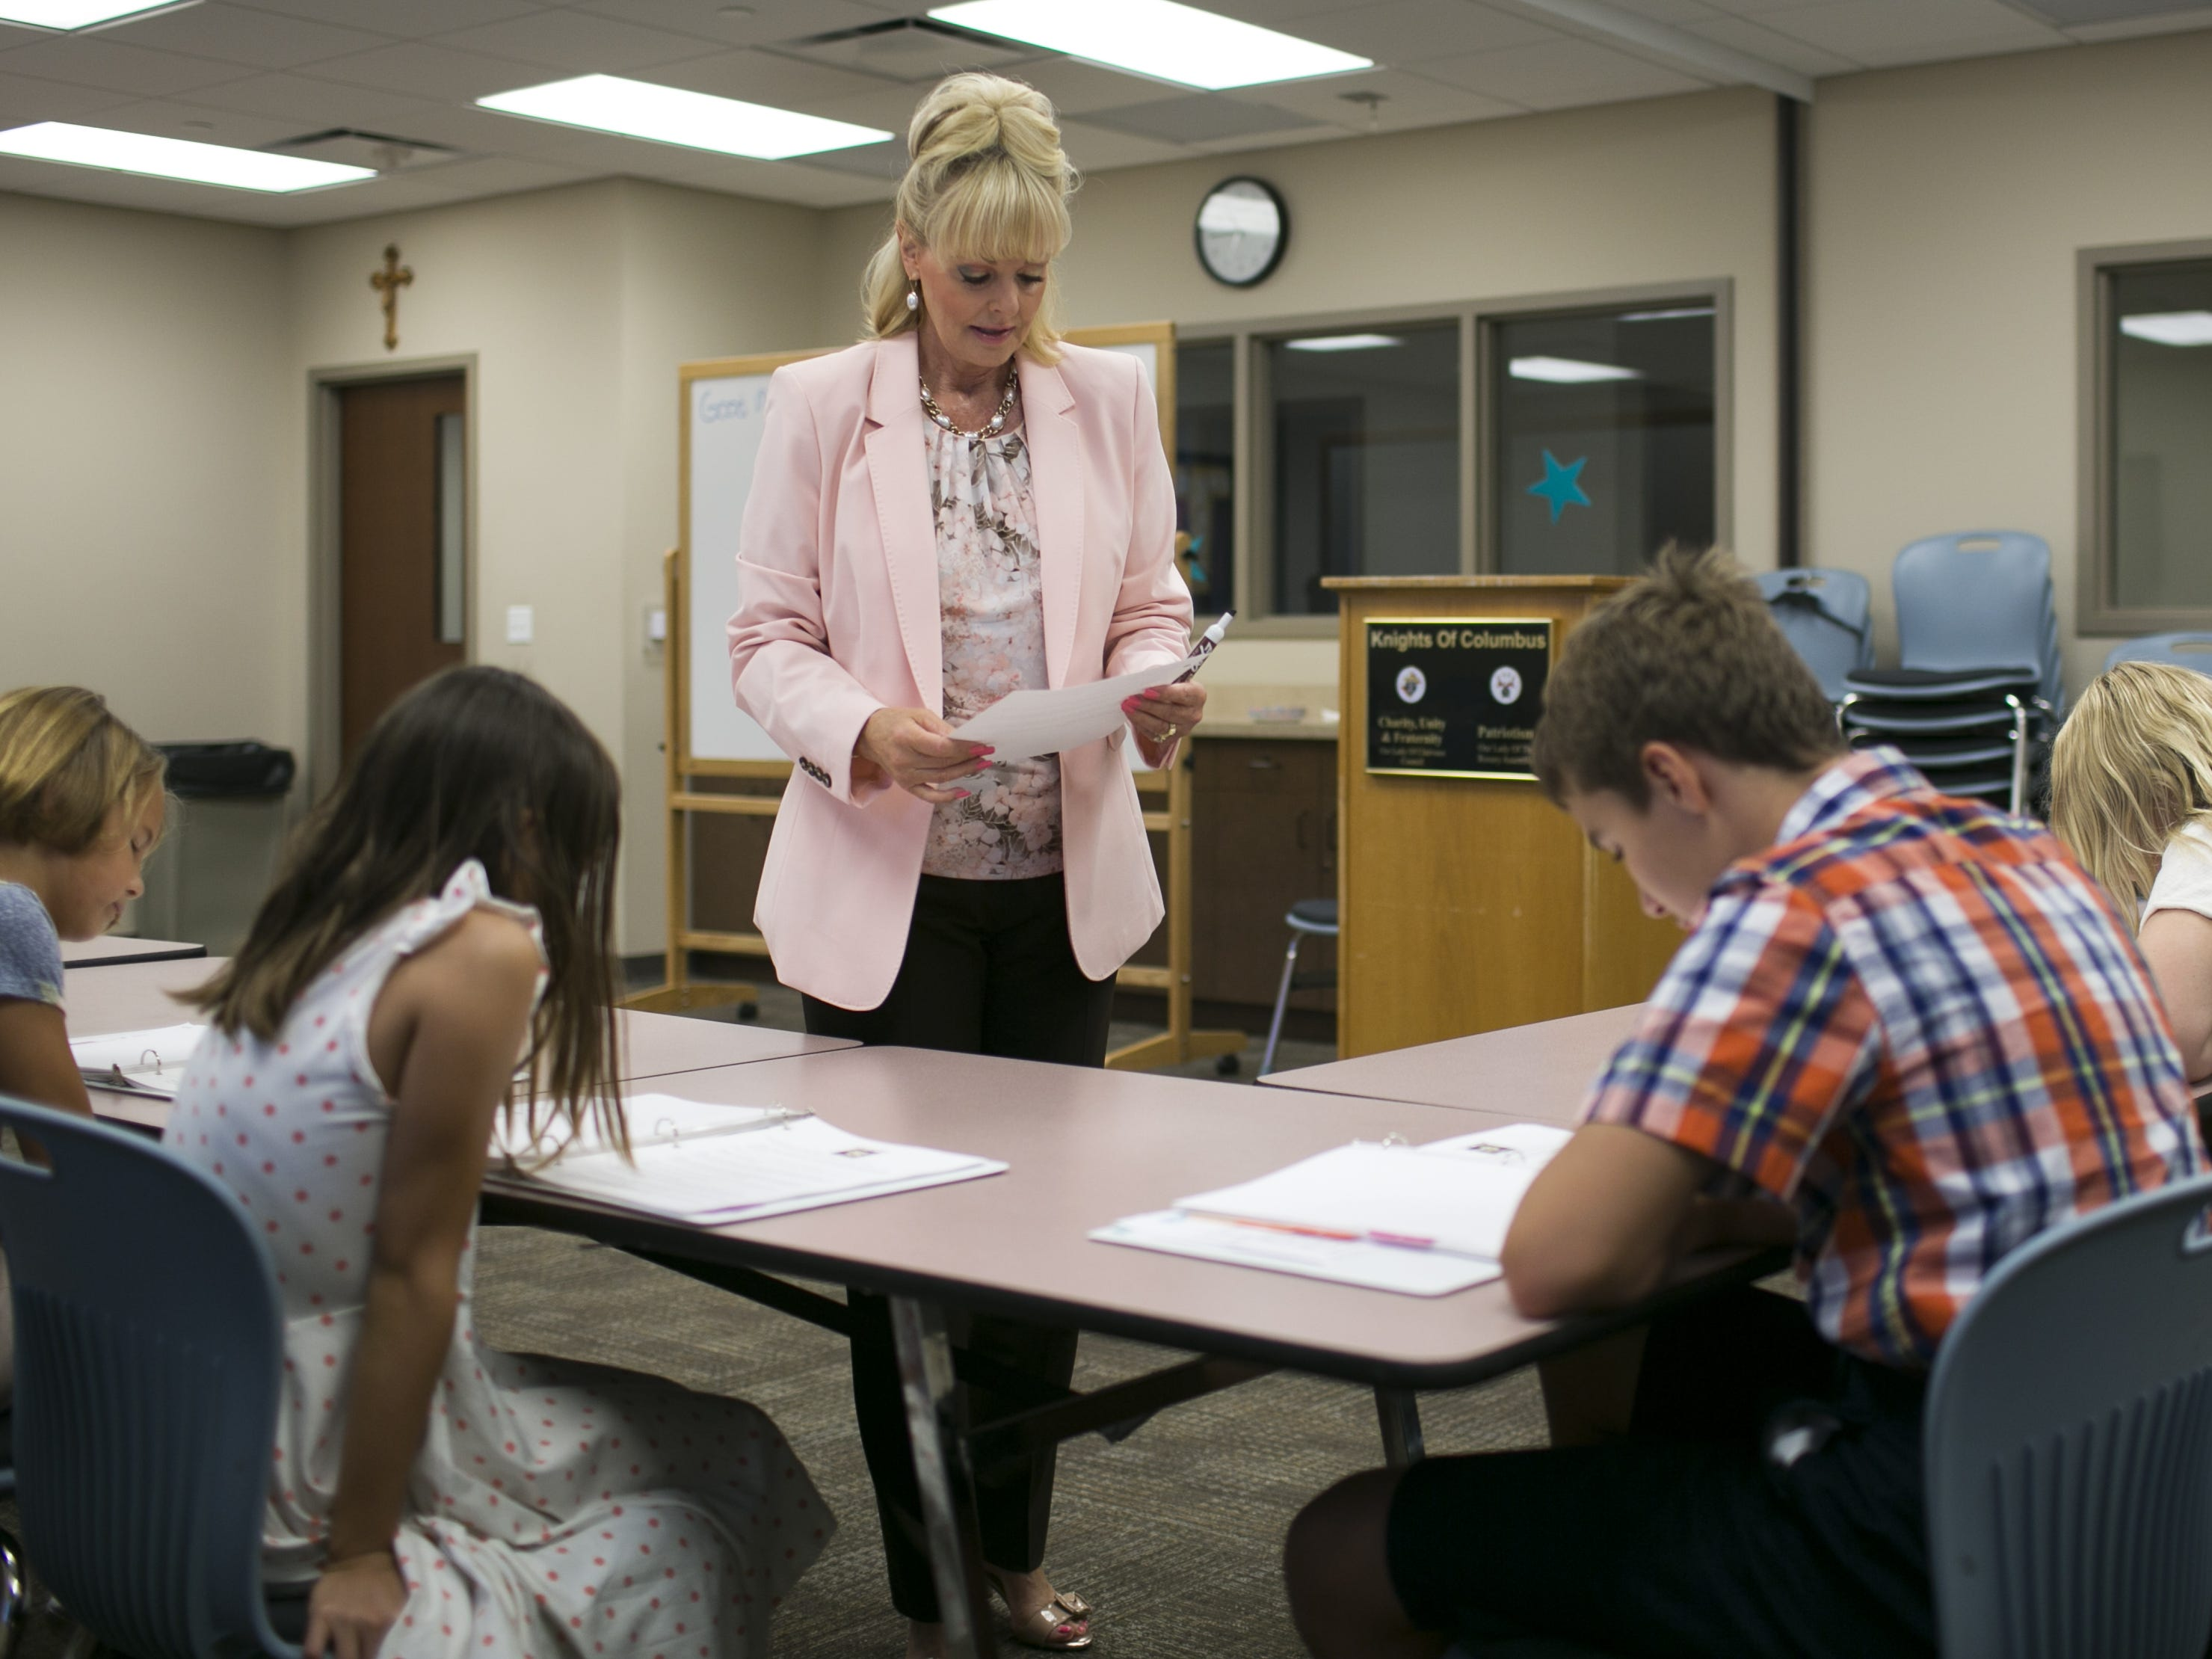 SueAnn Brown, center, teaches an etiquette class to kids ages 9-13 at the St. Bernard of Clairvaux Church in Scottsdale on July 20, 2018.  Brown started the program with the aim to teach kids, adults and companies on proper manners and social etiquette.